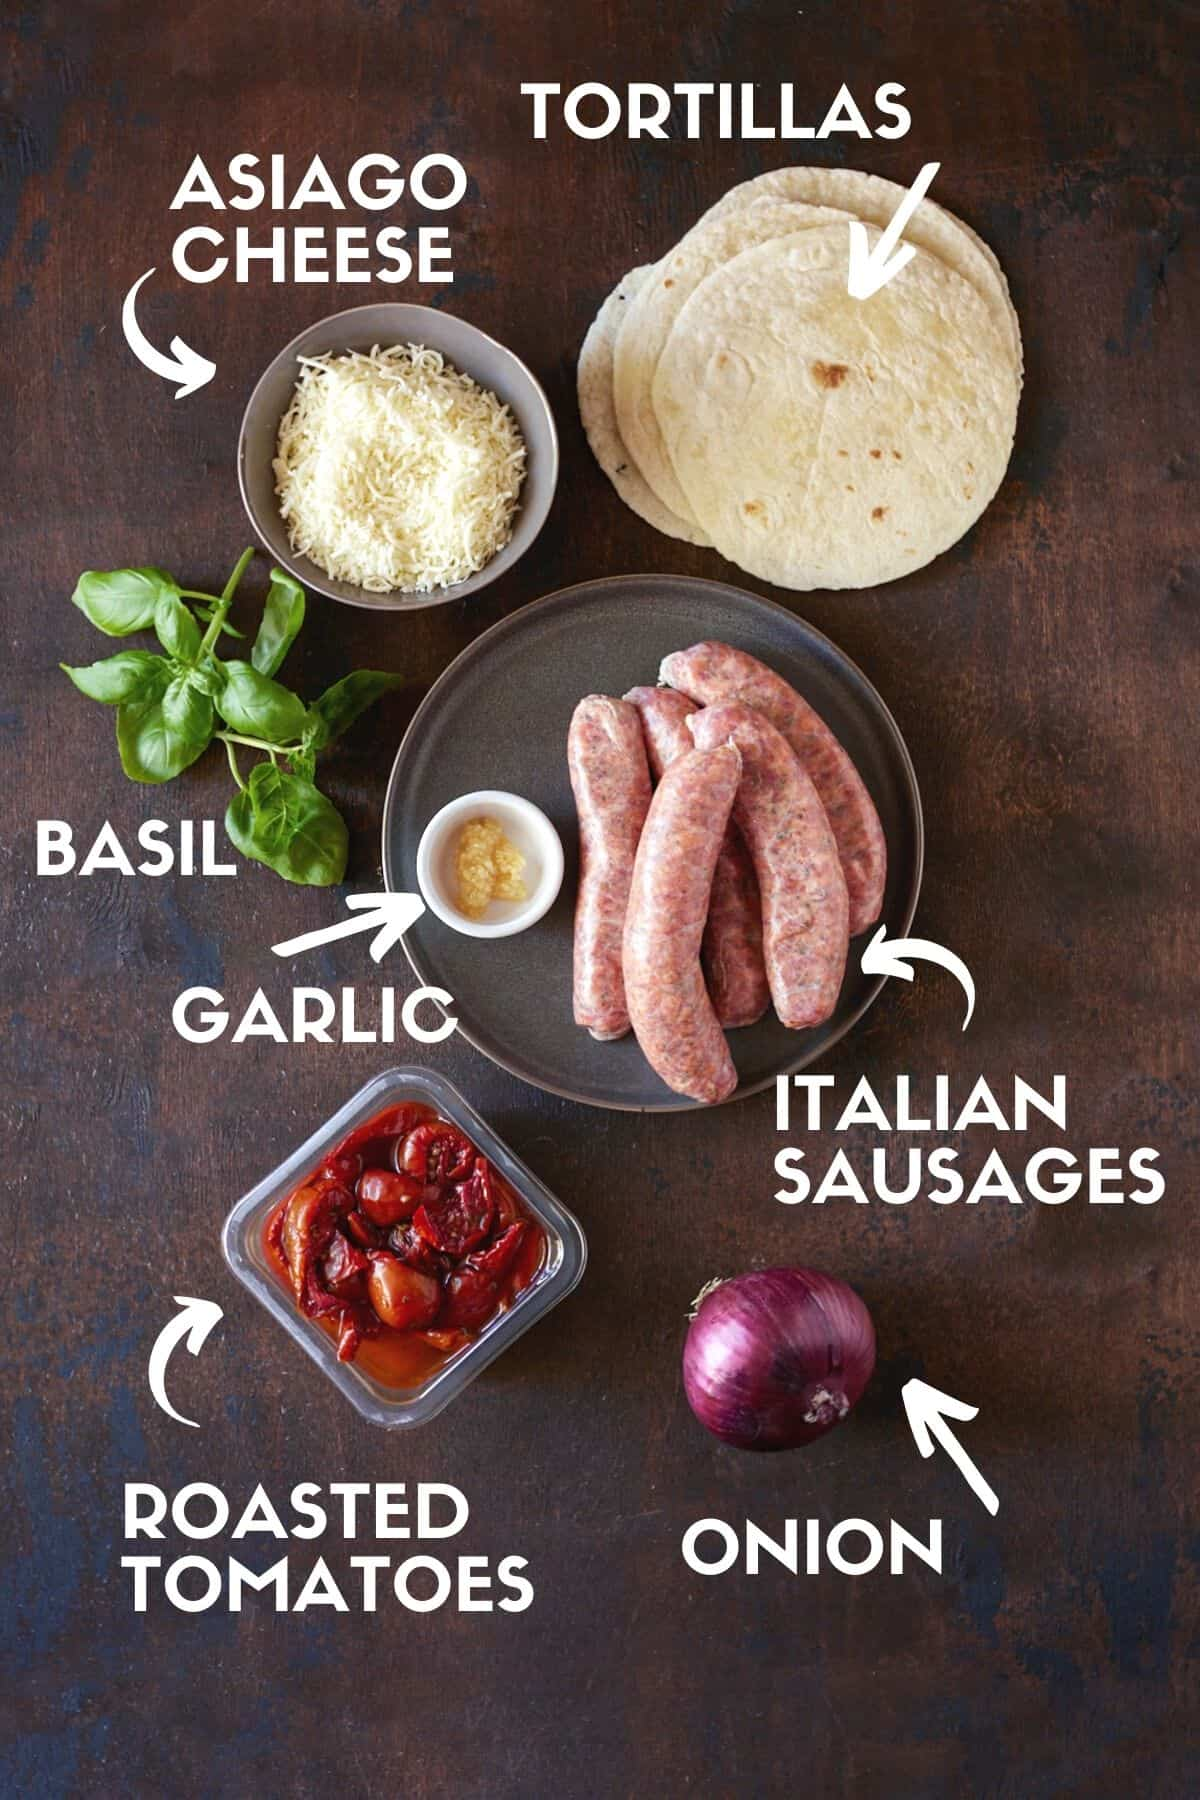 Ingredients for Italian Grilled Sausages, including sausages, roasted tomatoes and tortillas.